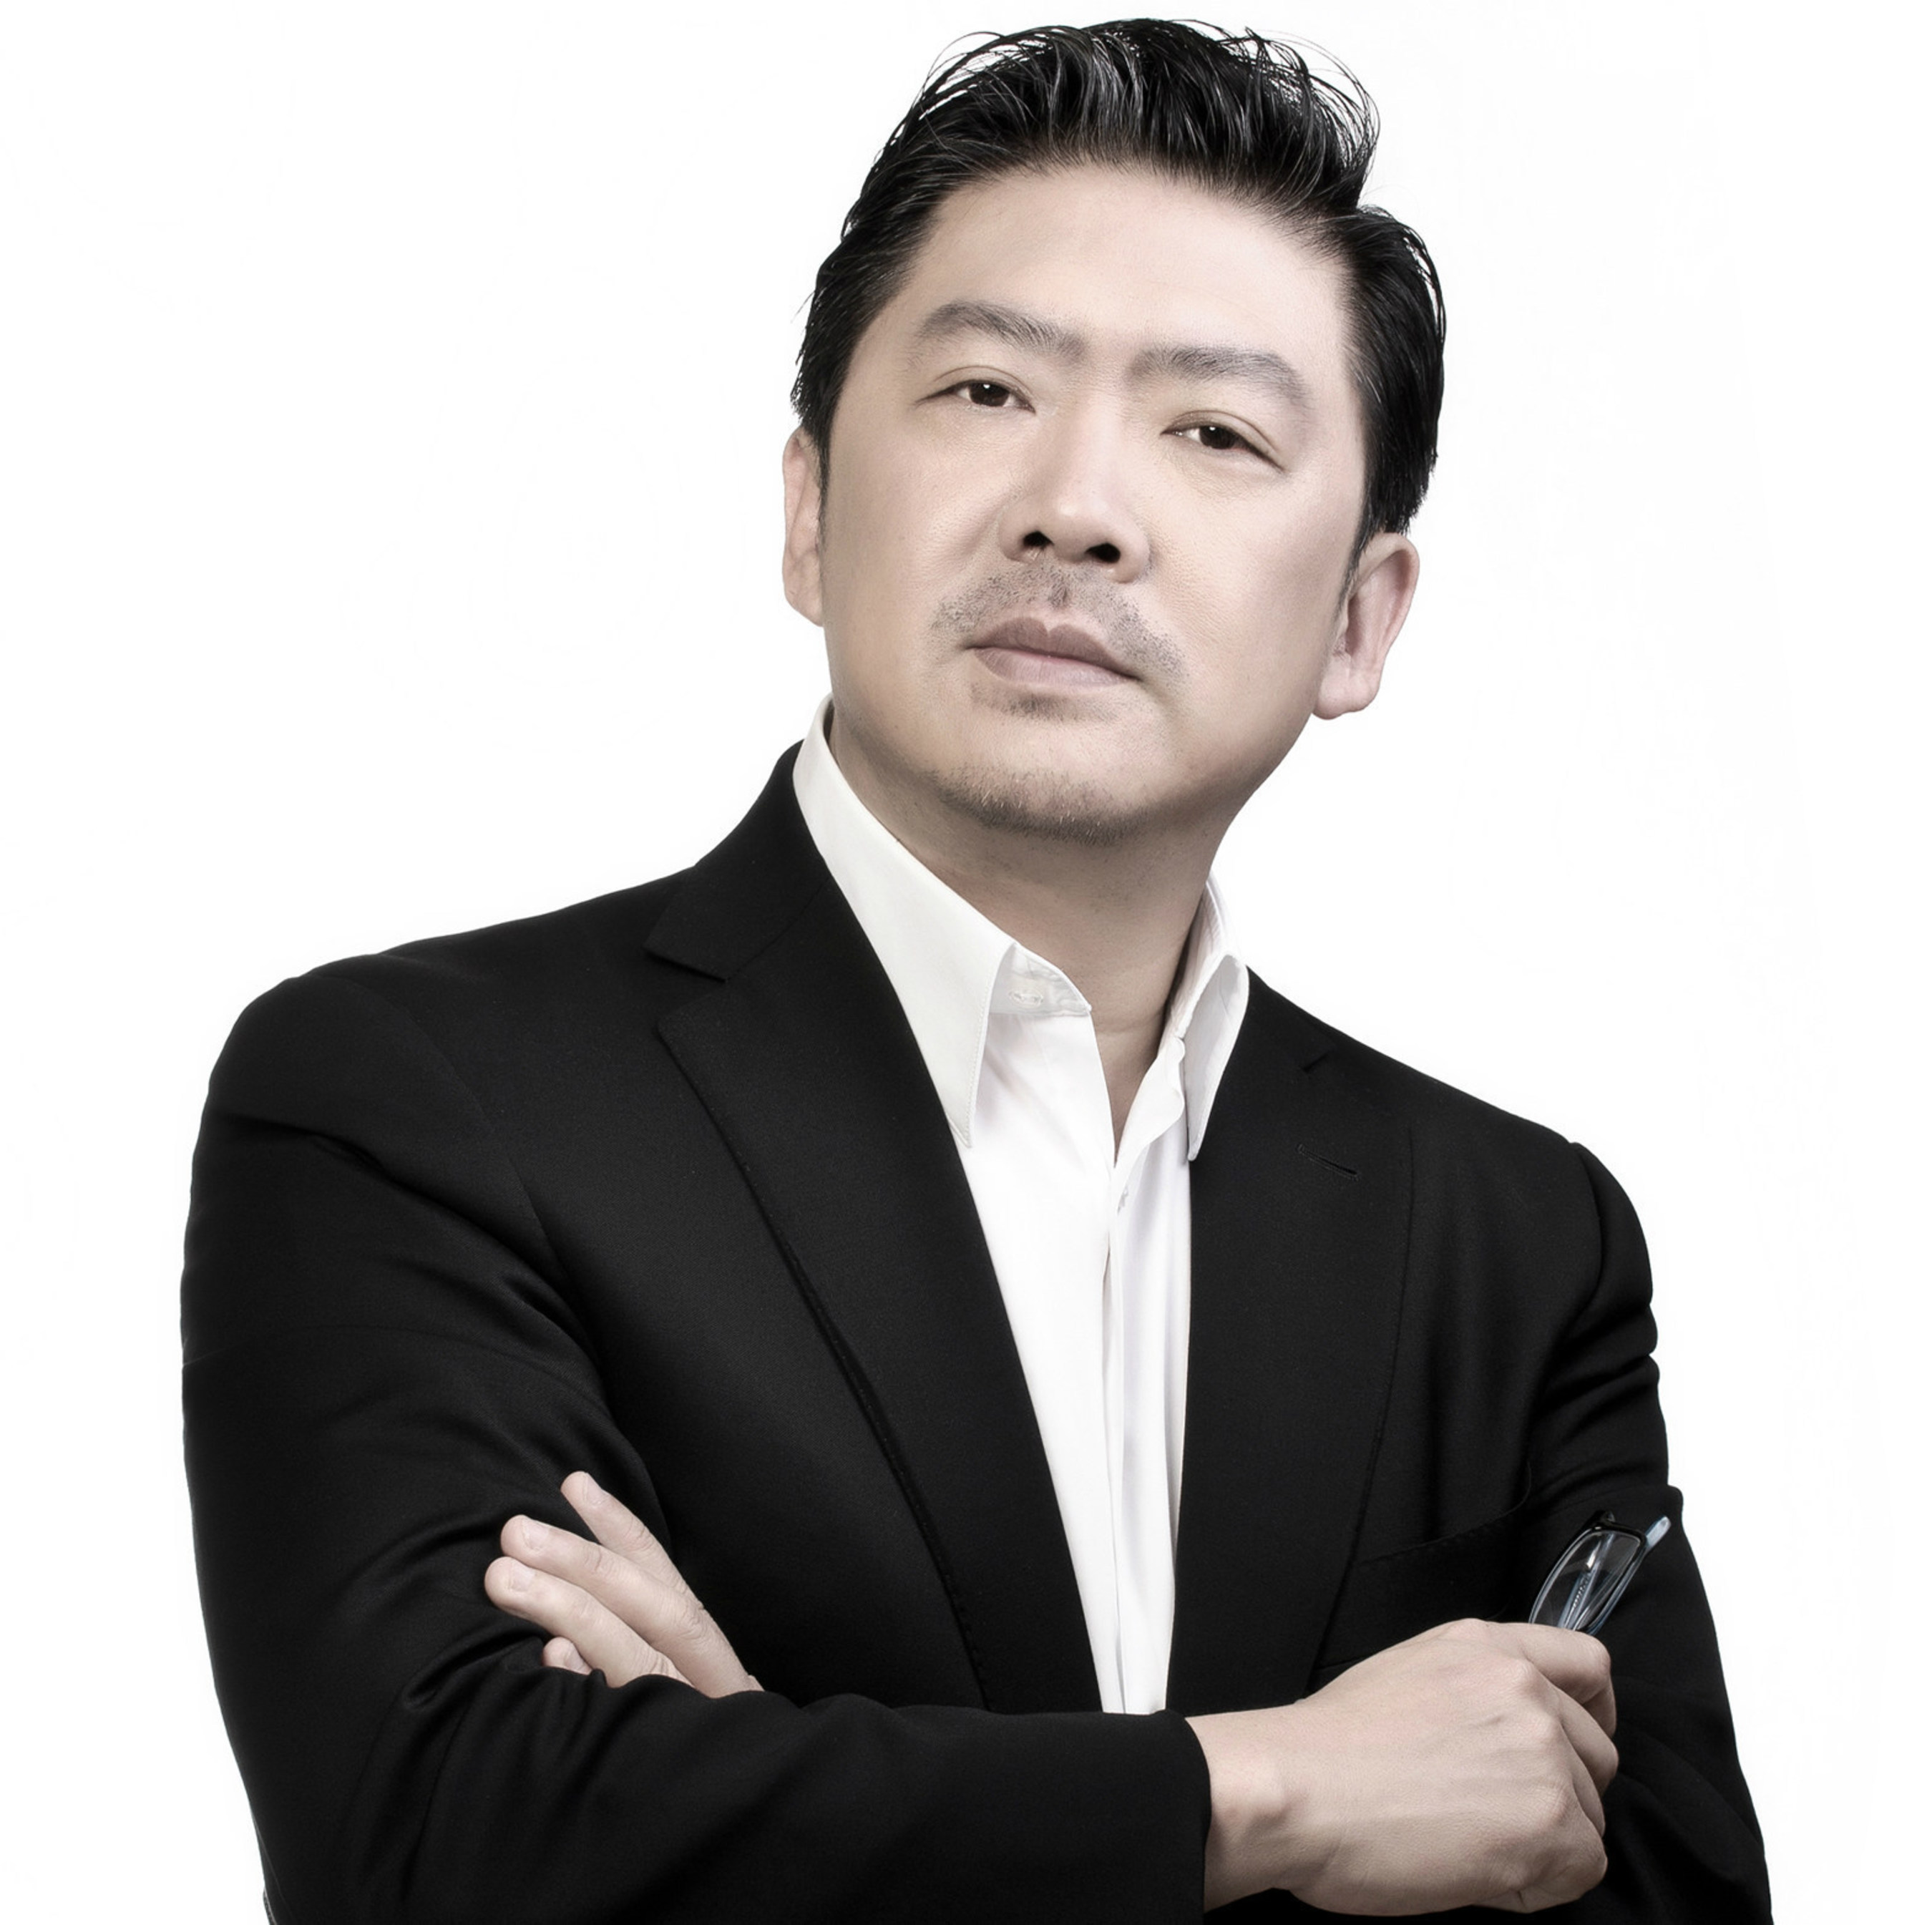 Conductor Long Yu Announces the Creation of a New Music Canon - COMPOSE 20:20